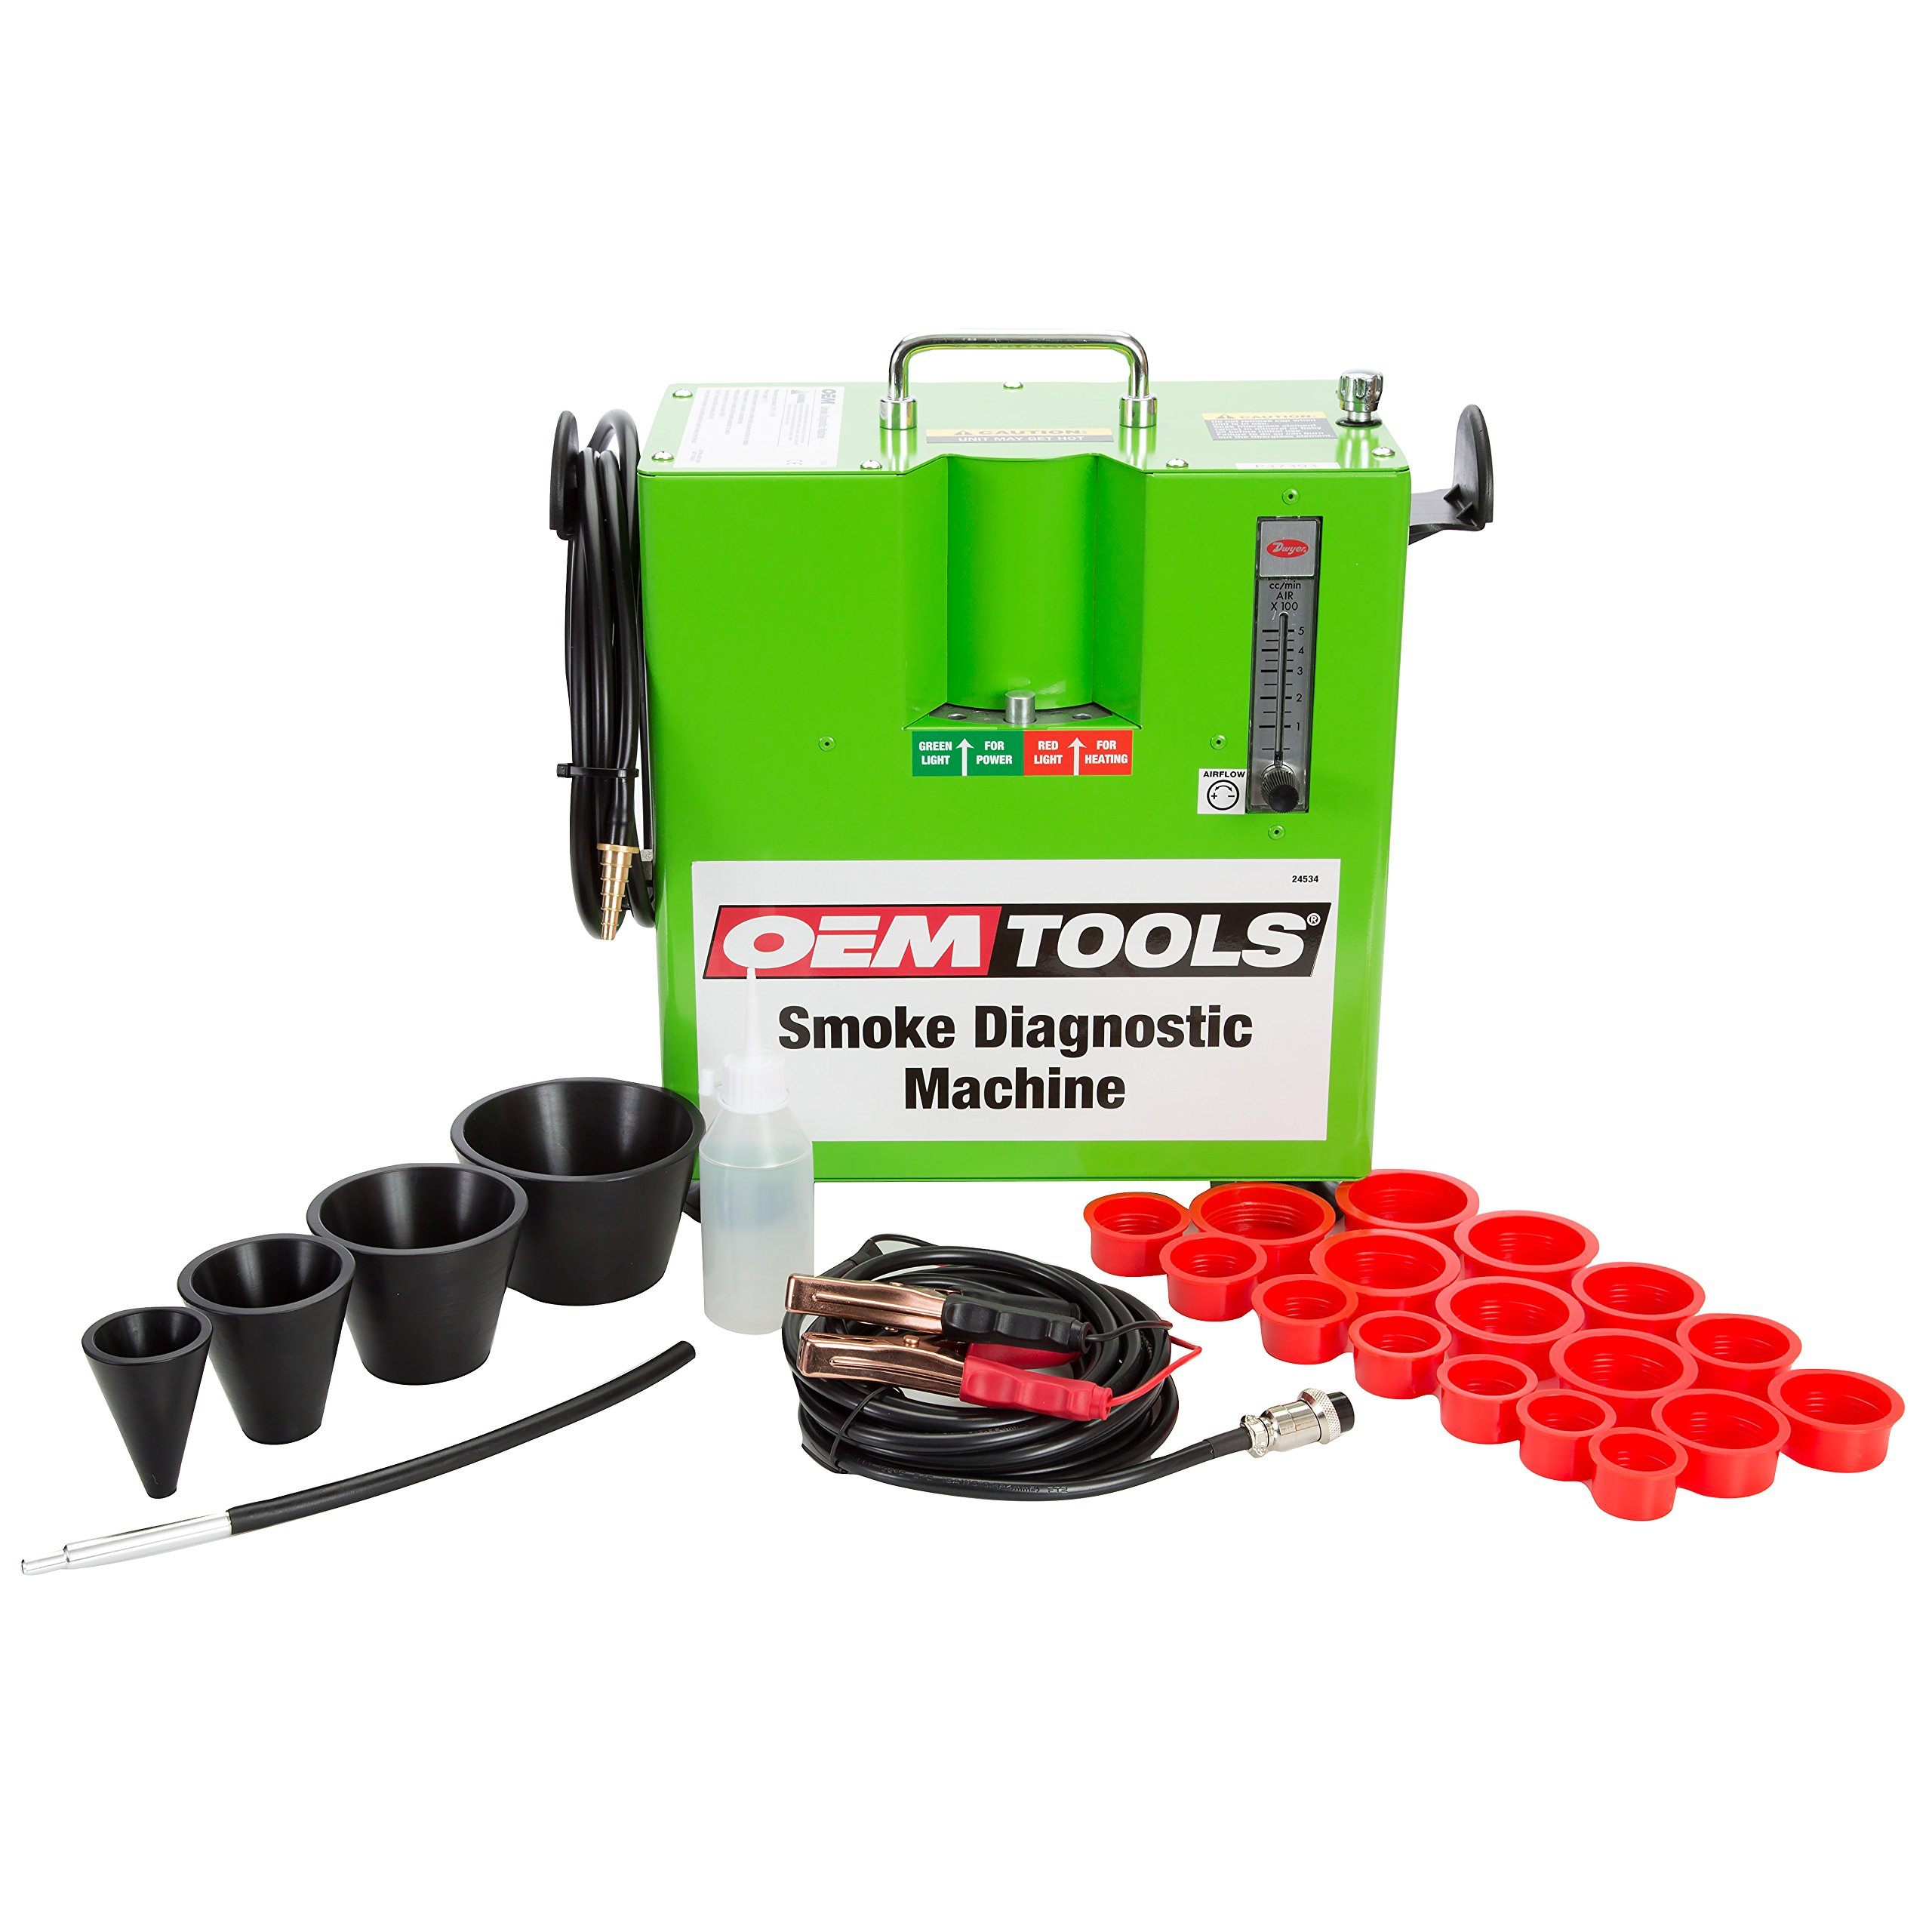 OEMTOOLS 24534 Smoke Diagnostic Machine